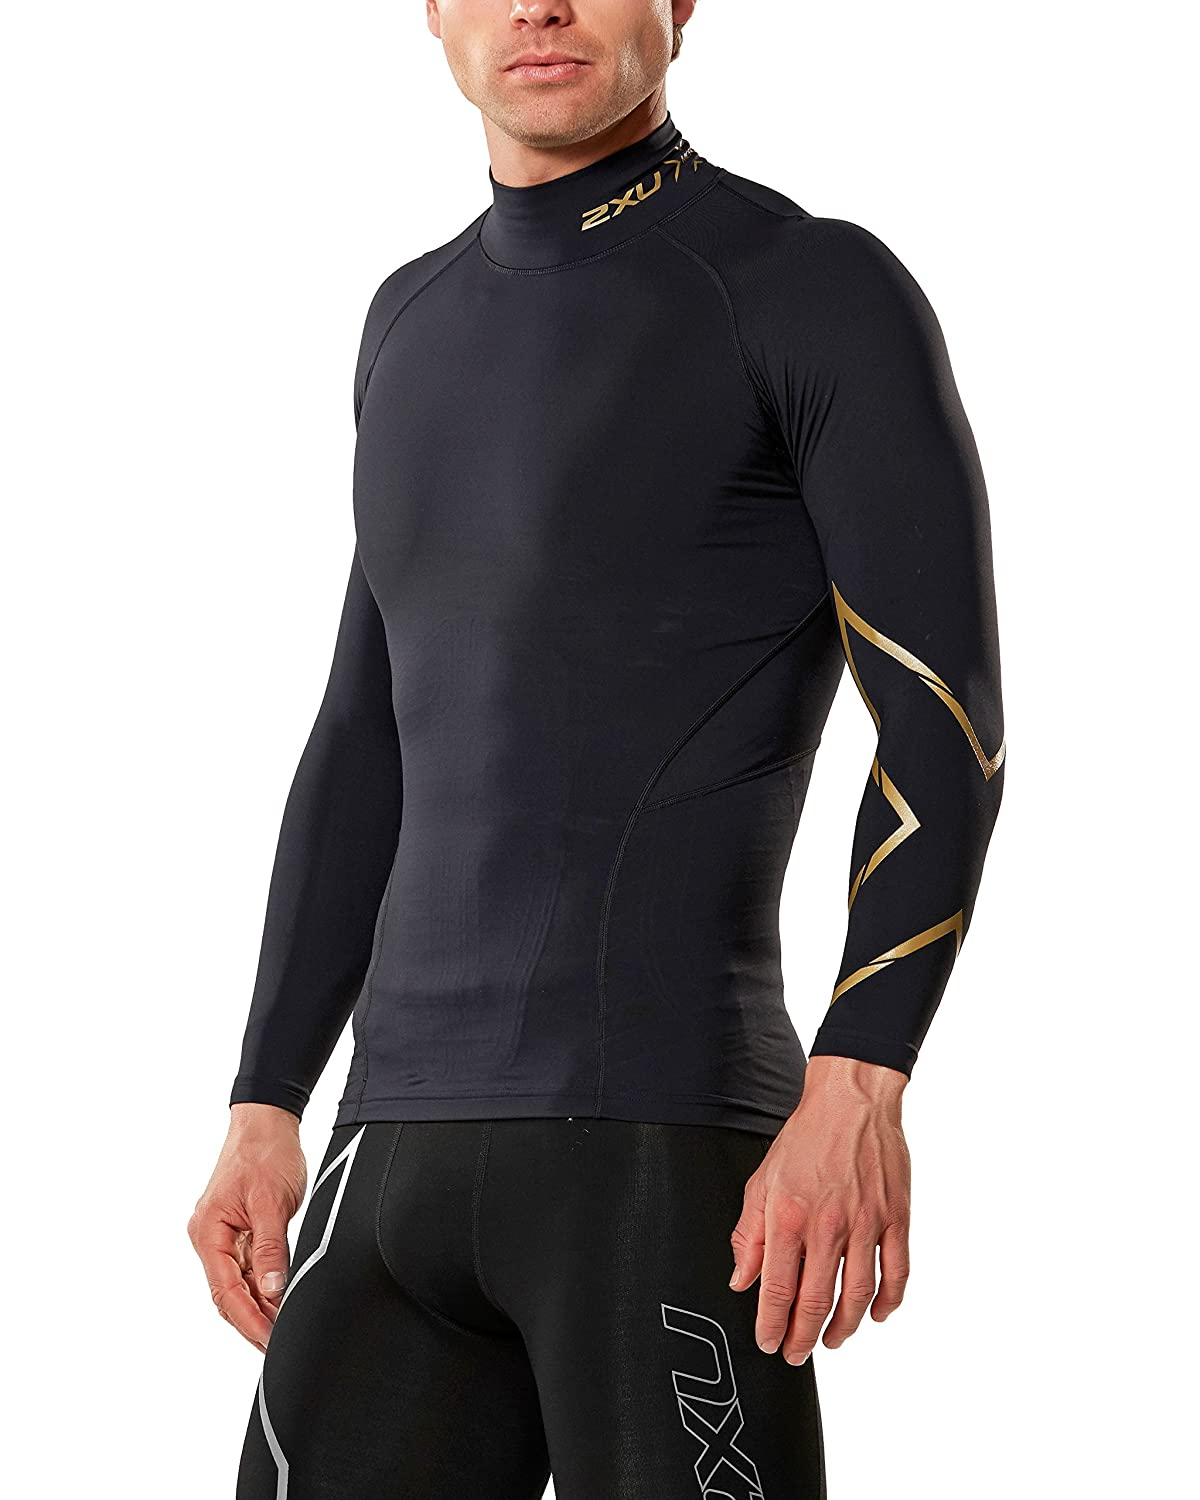 Image of 2XU Men's MCS Thermal Compression Top